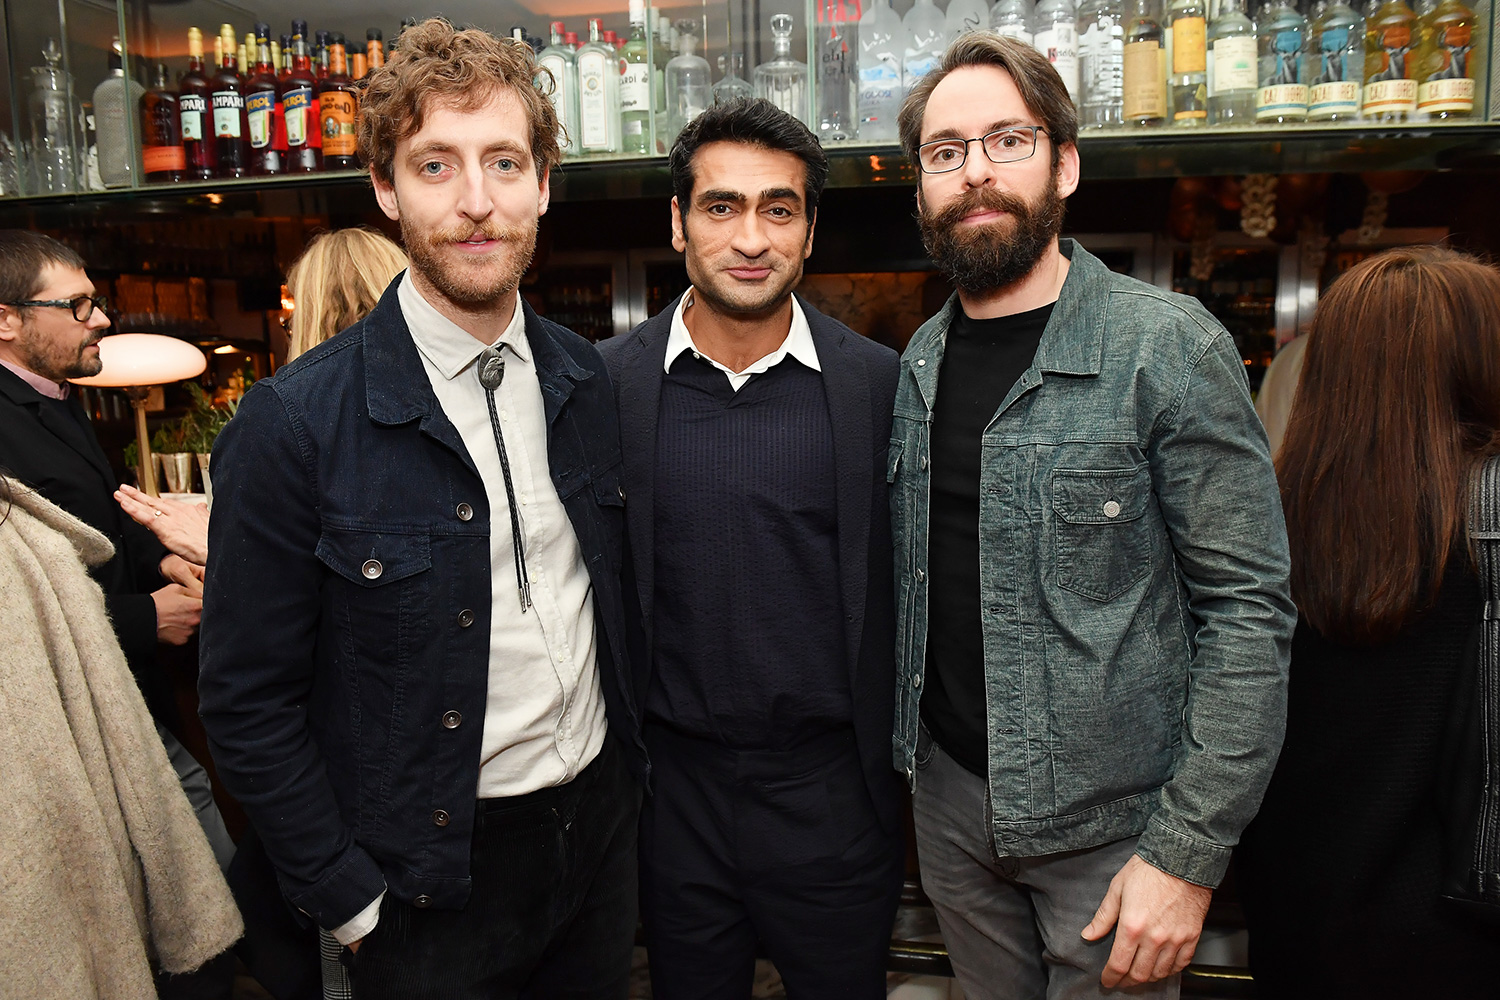 """Thomas Middleditch, Kumail Nanjiani and Martin Starr attend the premiere of Apple TV+'s """"Little America"""" afterparty on January 23, 2020 in West Hollywood, California"""